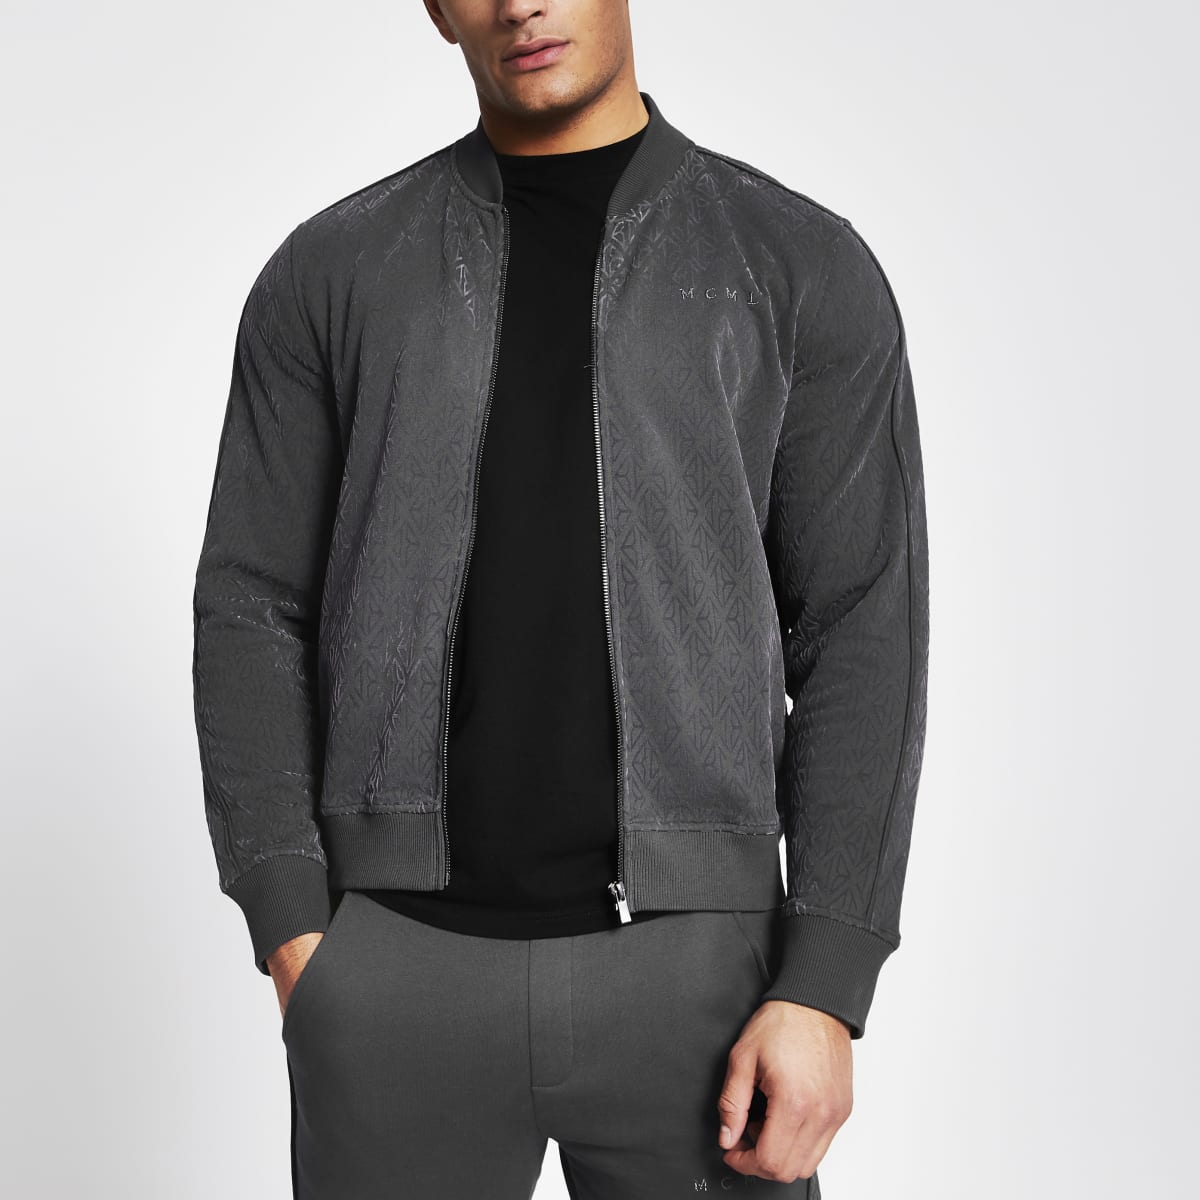 MCMLX dark grey velour zip sweatshirt